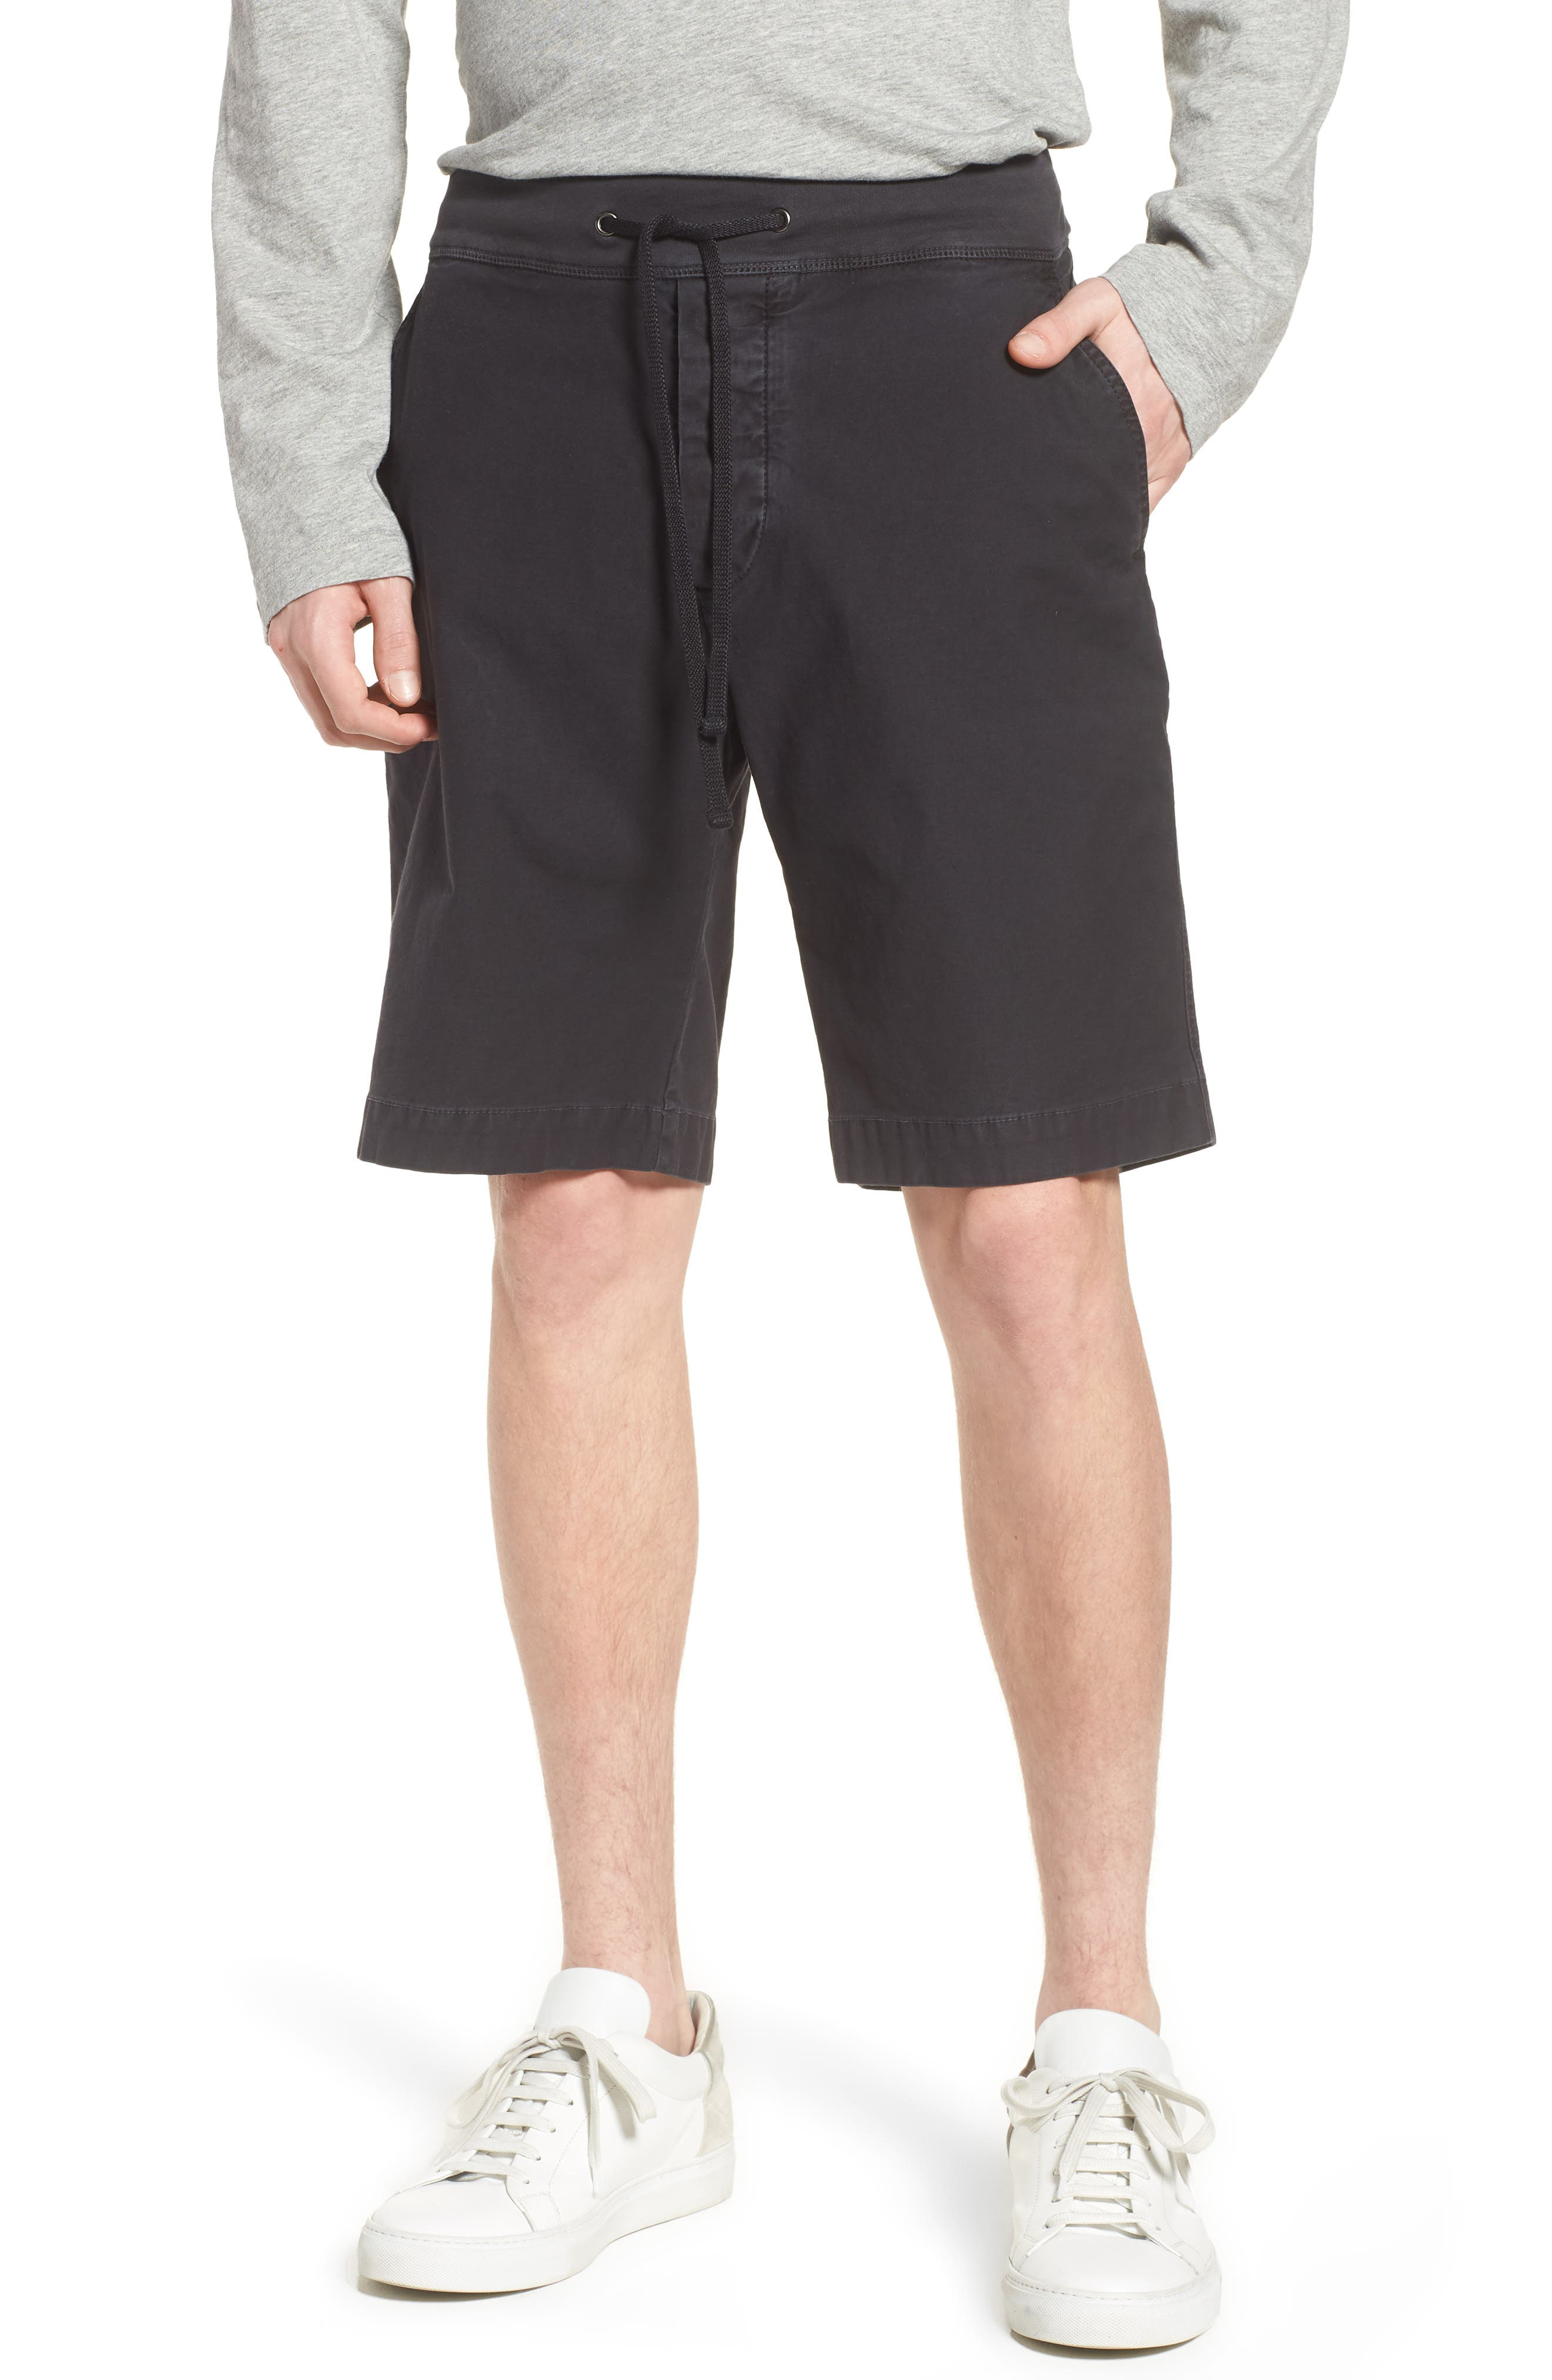 Alternate Image 1 Selected - James Perse Compact Stretch Cotton Shorts